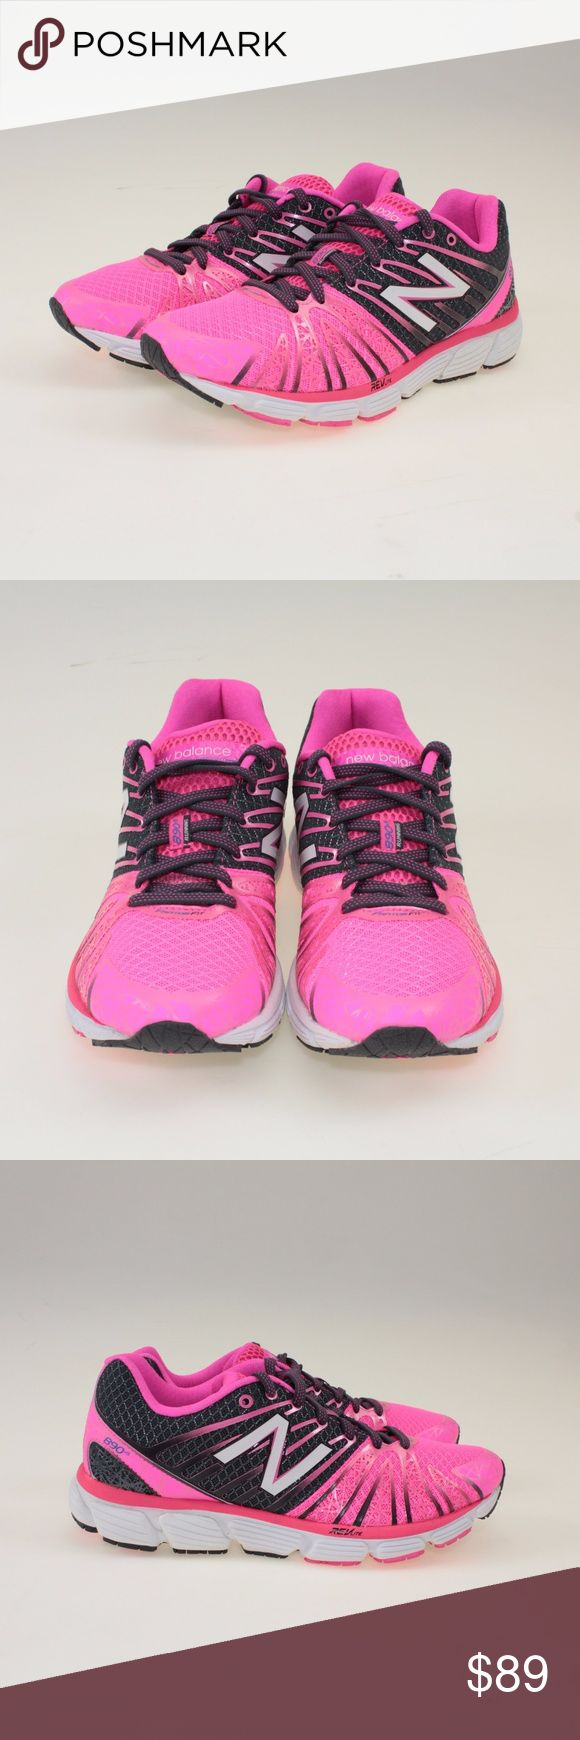 New Balance Pink Ribbon 890 V5 Running Shoes These adorable running shoes are the perfect way to show your support--of the cause and your feet! The Pink Ribbon 890v5 combines the REVlite midsole with the ABZORB crash pad for supreme comfort and impact protection. But with the FantomFit, Ortholite sock liner and no-sew overlays, this shoe is incredibly light-so you can feel incredibly fast. #40WJDW New Balance Shoes Athletic Shoes